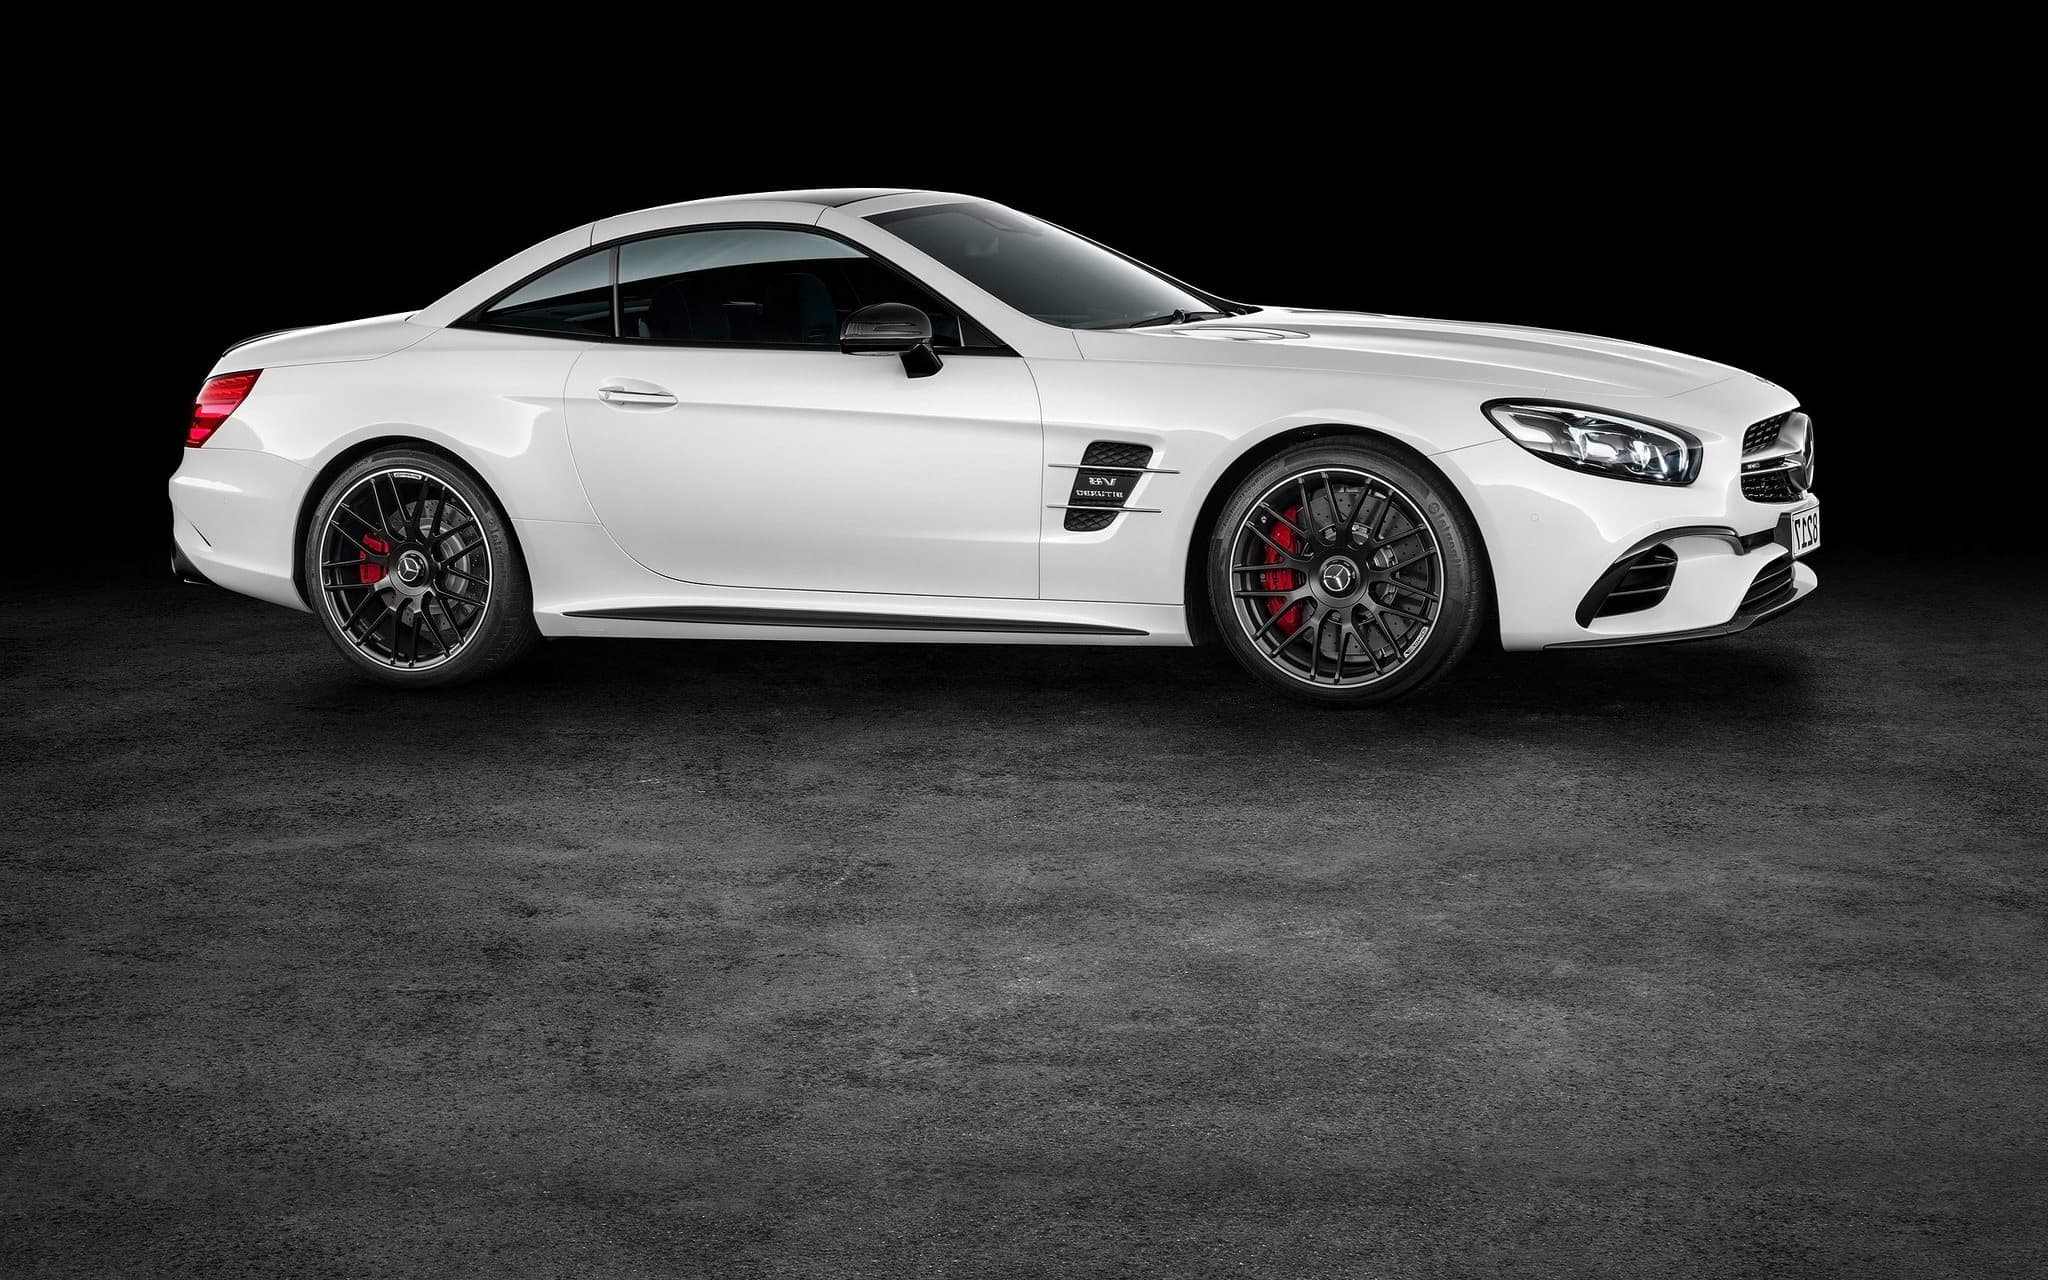 white 2016 Mercedes AMG SL63 black background